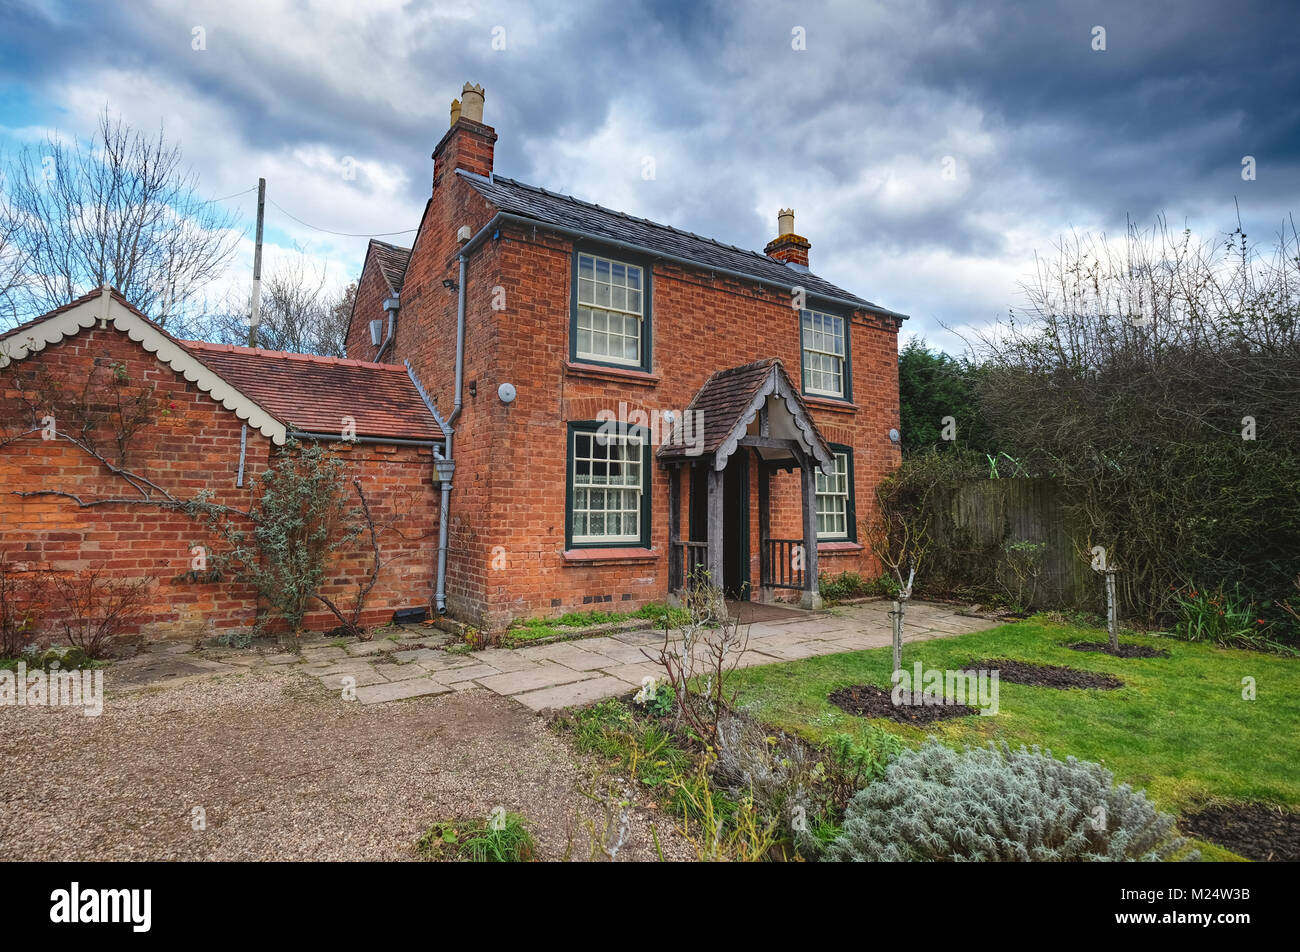 'The Firs' cottage in Malvern, Worcs - birthplace of composer Edward Elgar - Stock Image